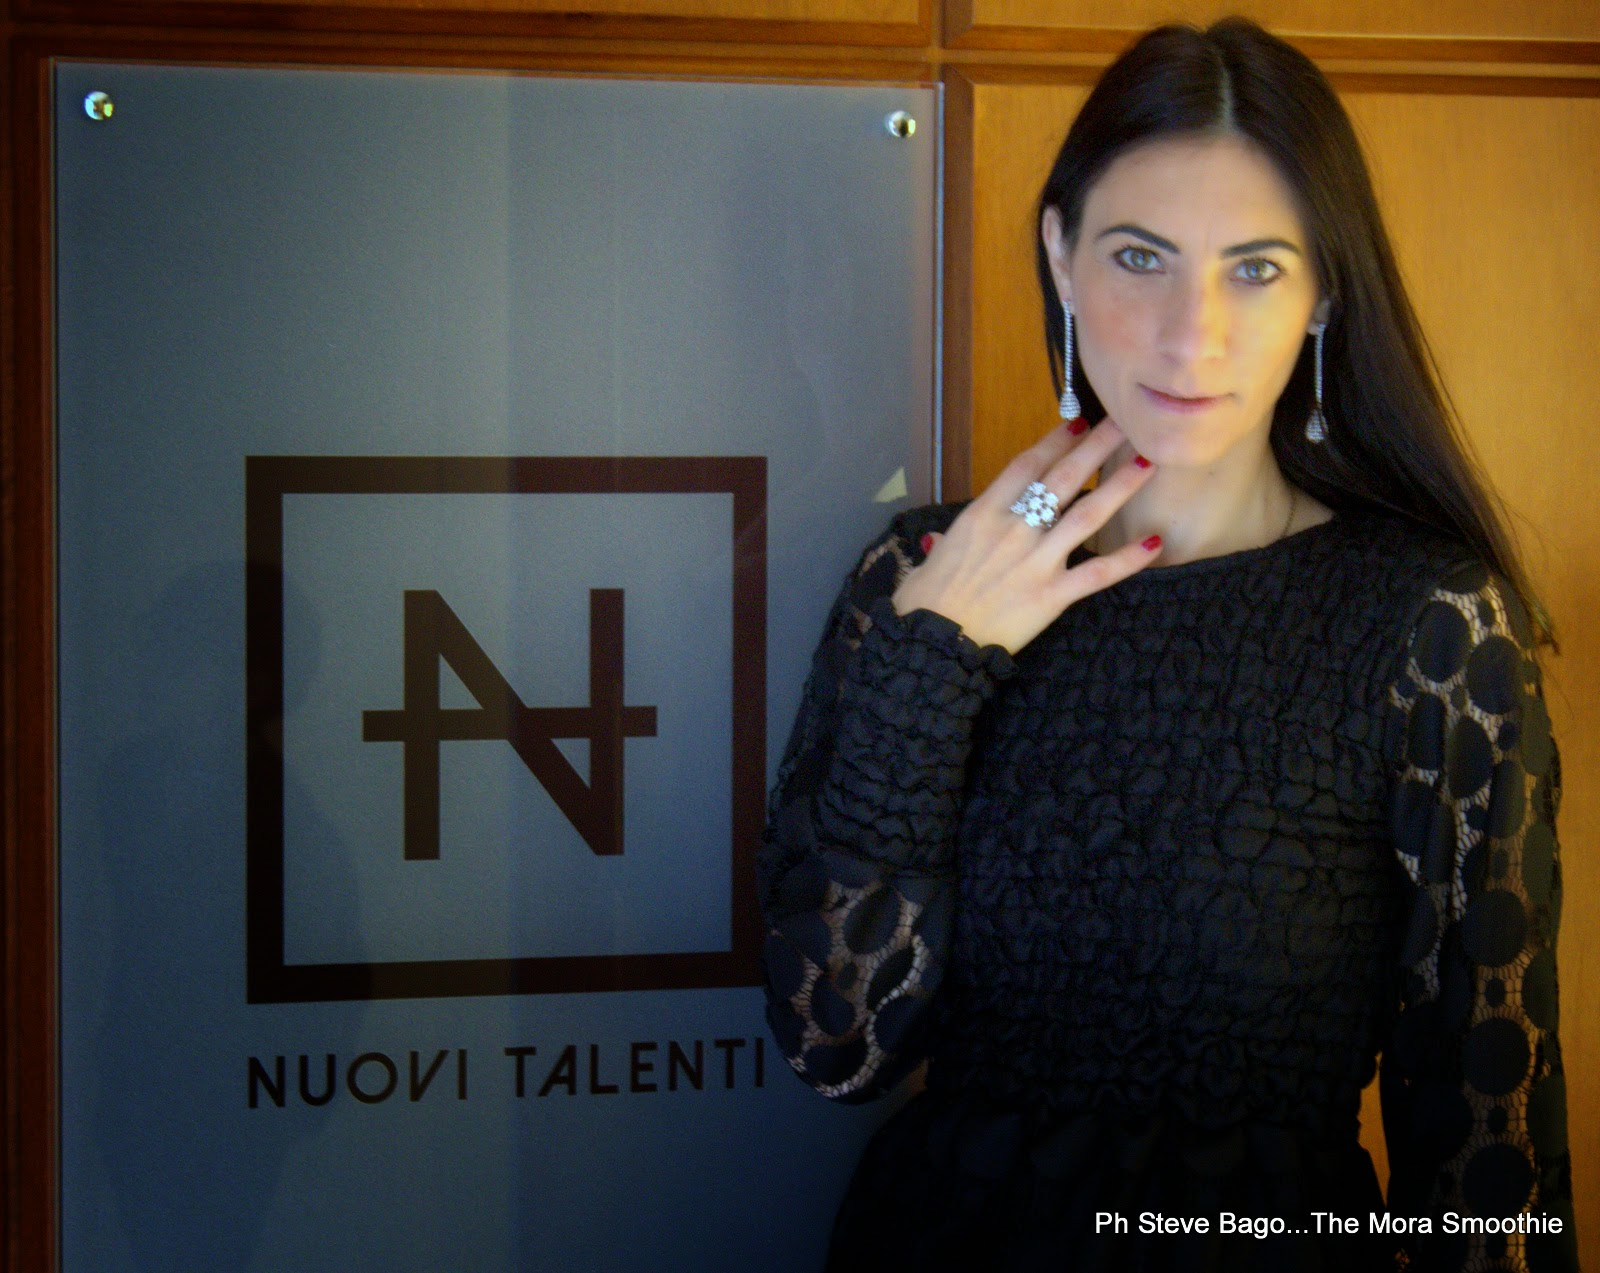 themorasmoothie, fashion, fashionblog, fashionblogger, nuovi talenti, barletta, jewelry, style, look, outfit, ootd, shooting, photoshooting, model, modella, gioielli, made in italy